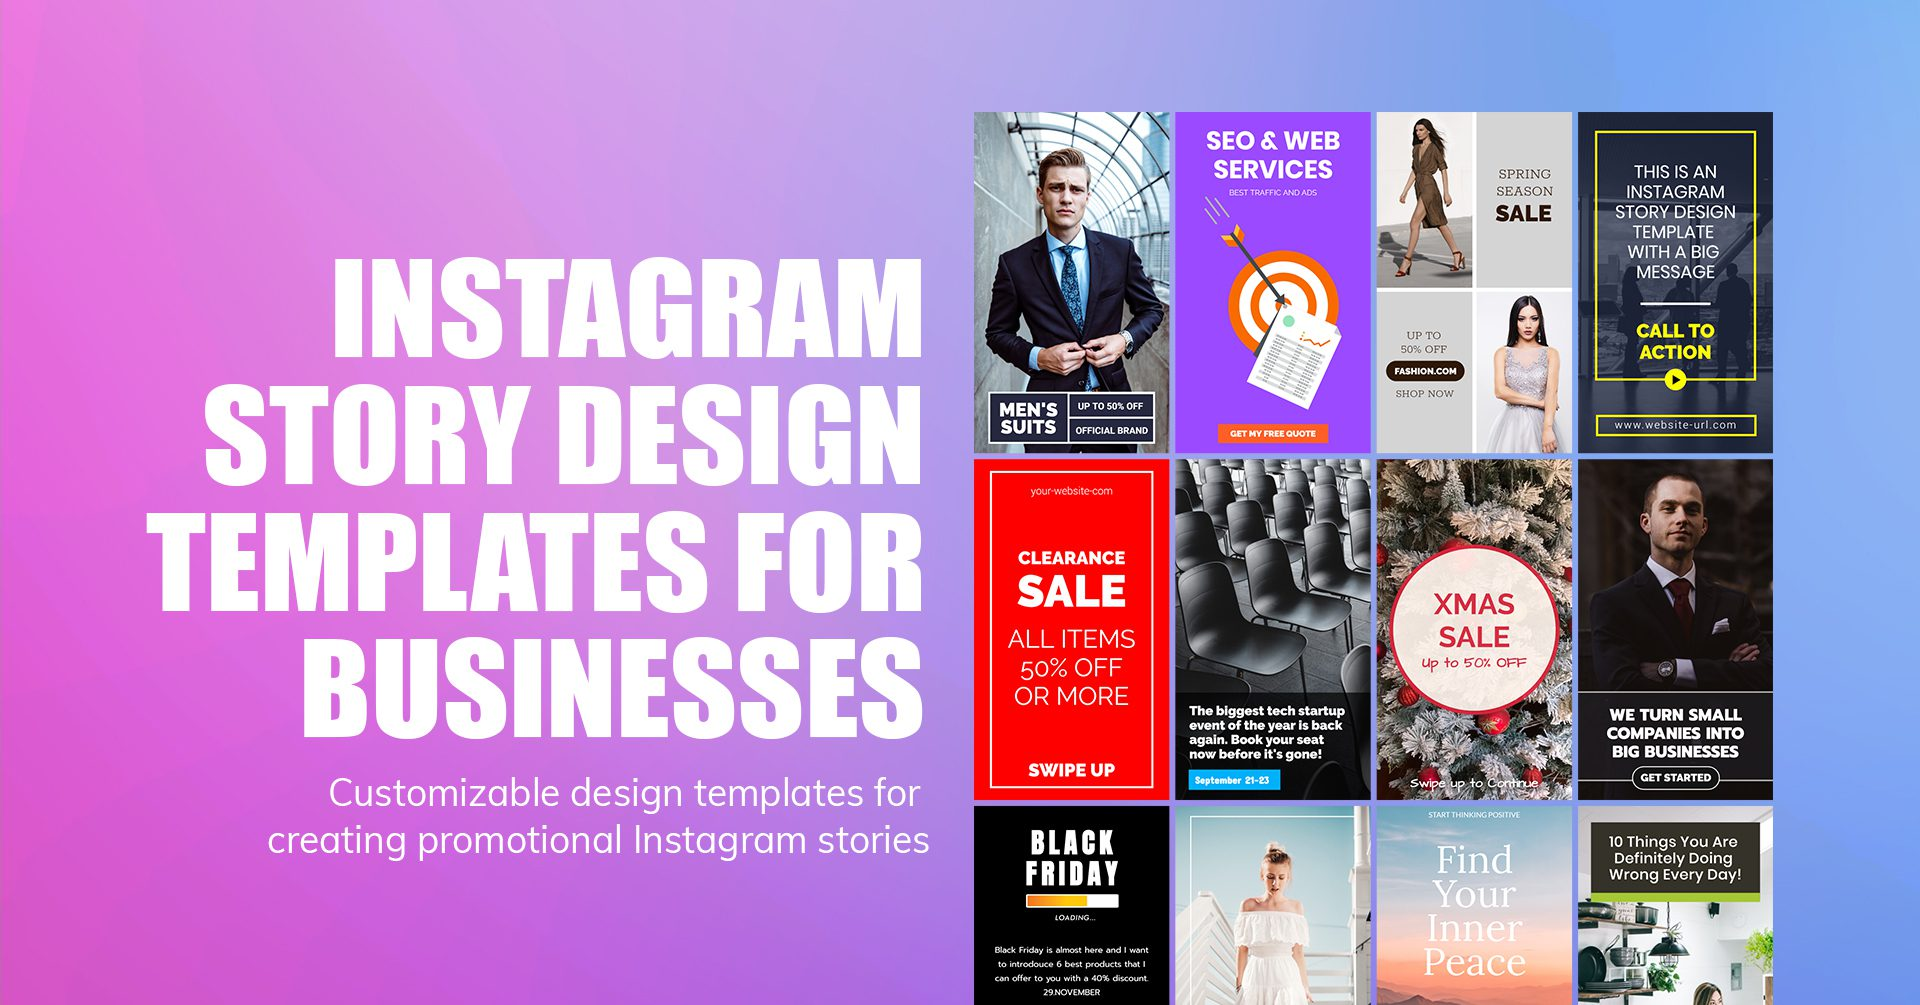 promotional-instagram-story-design-template-ads